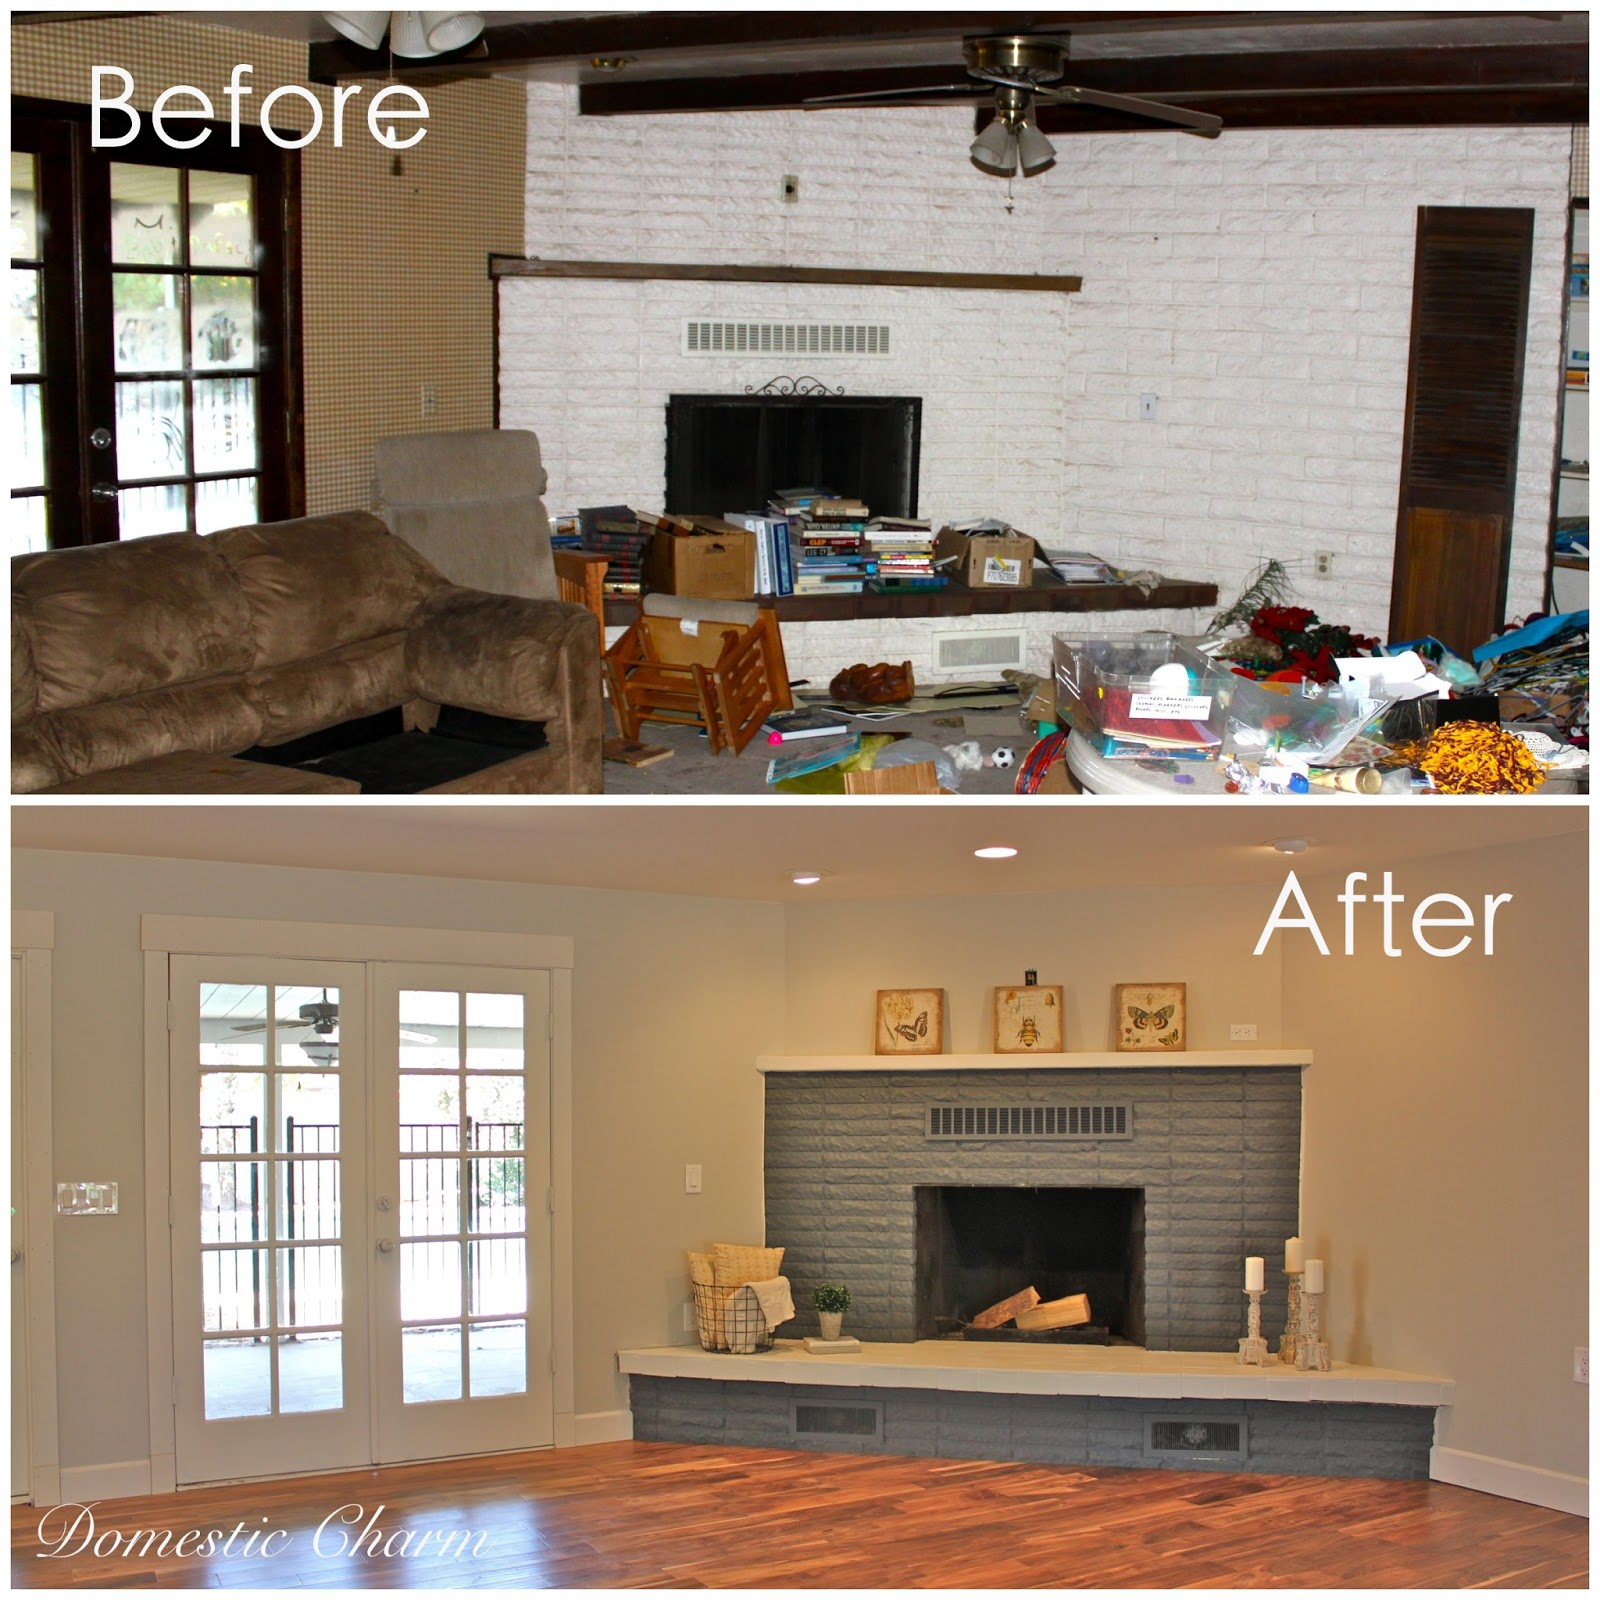 Domestic charm fireplace makeover Corner fireplace makeover ideas